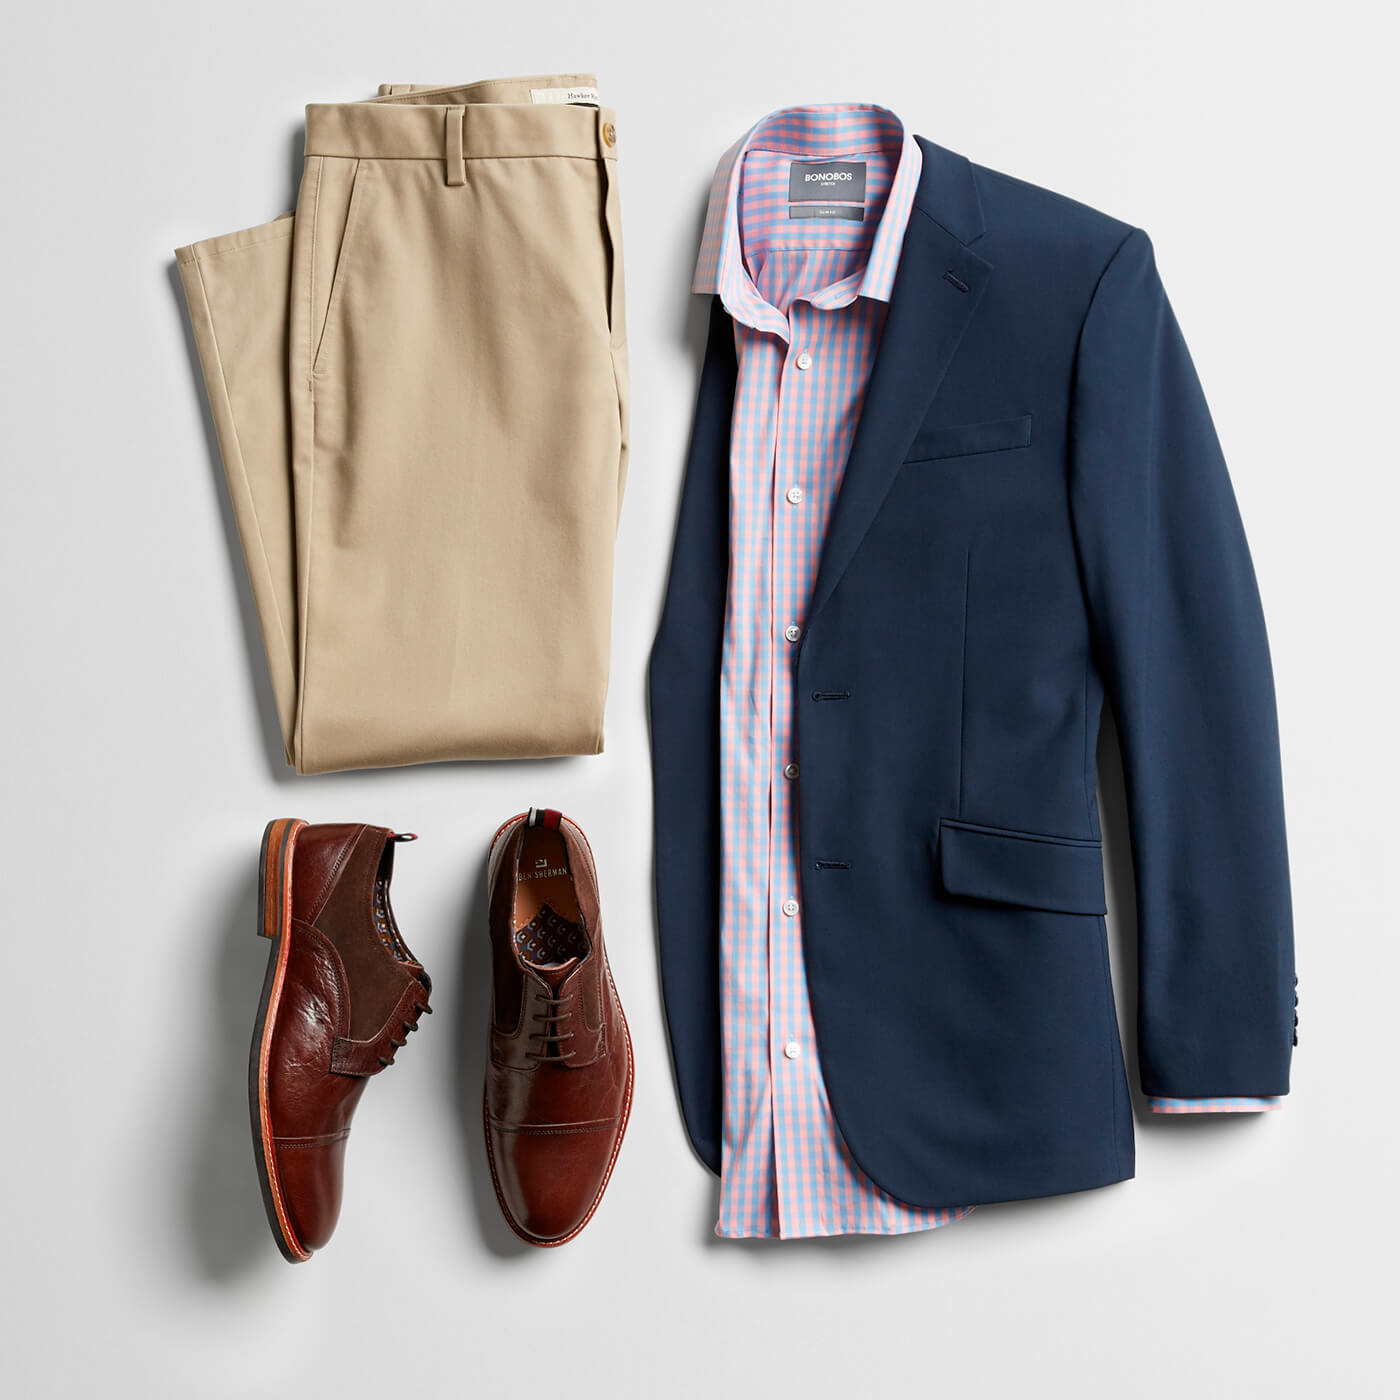 navy blazer, tan dress pants, brown loafers and pink dress shirt